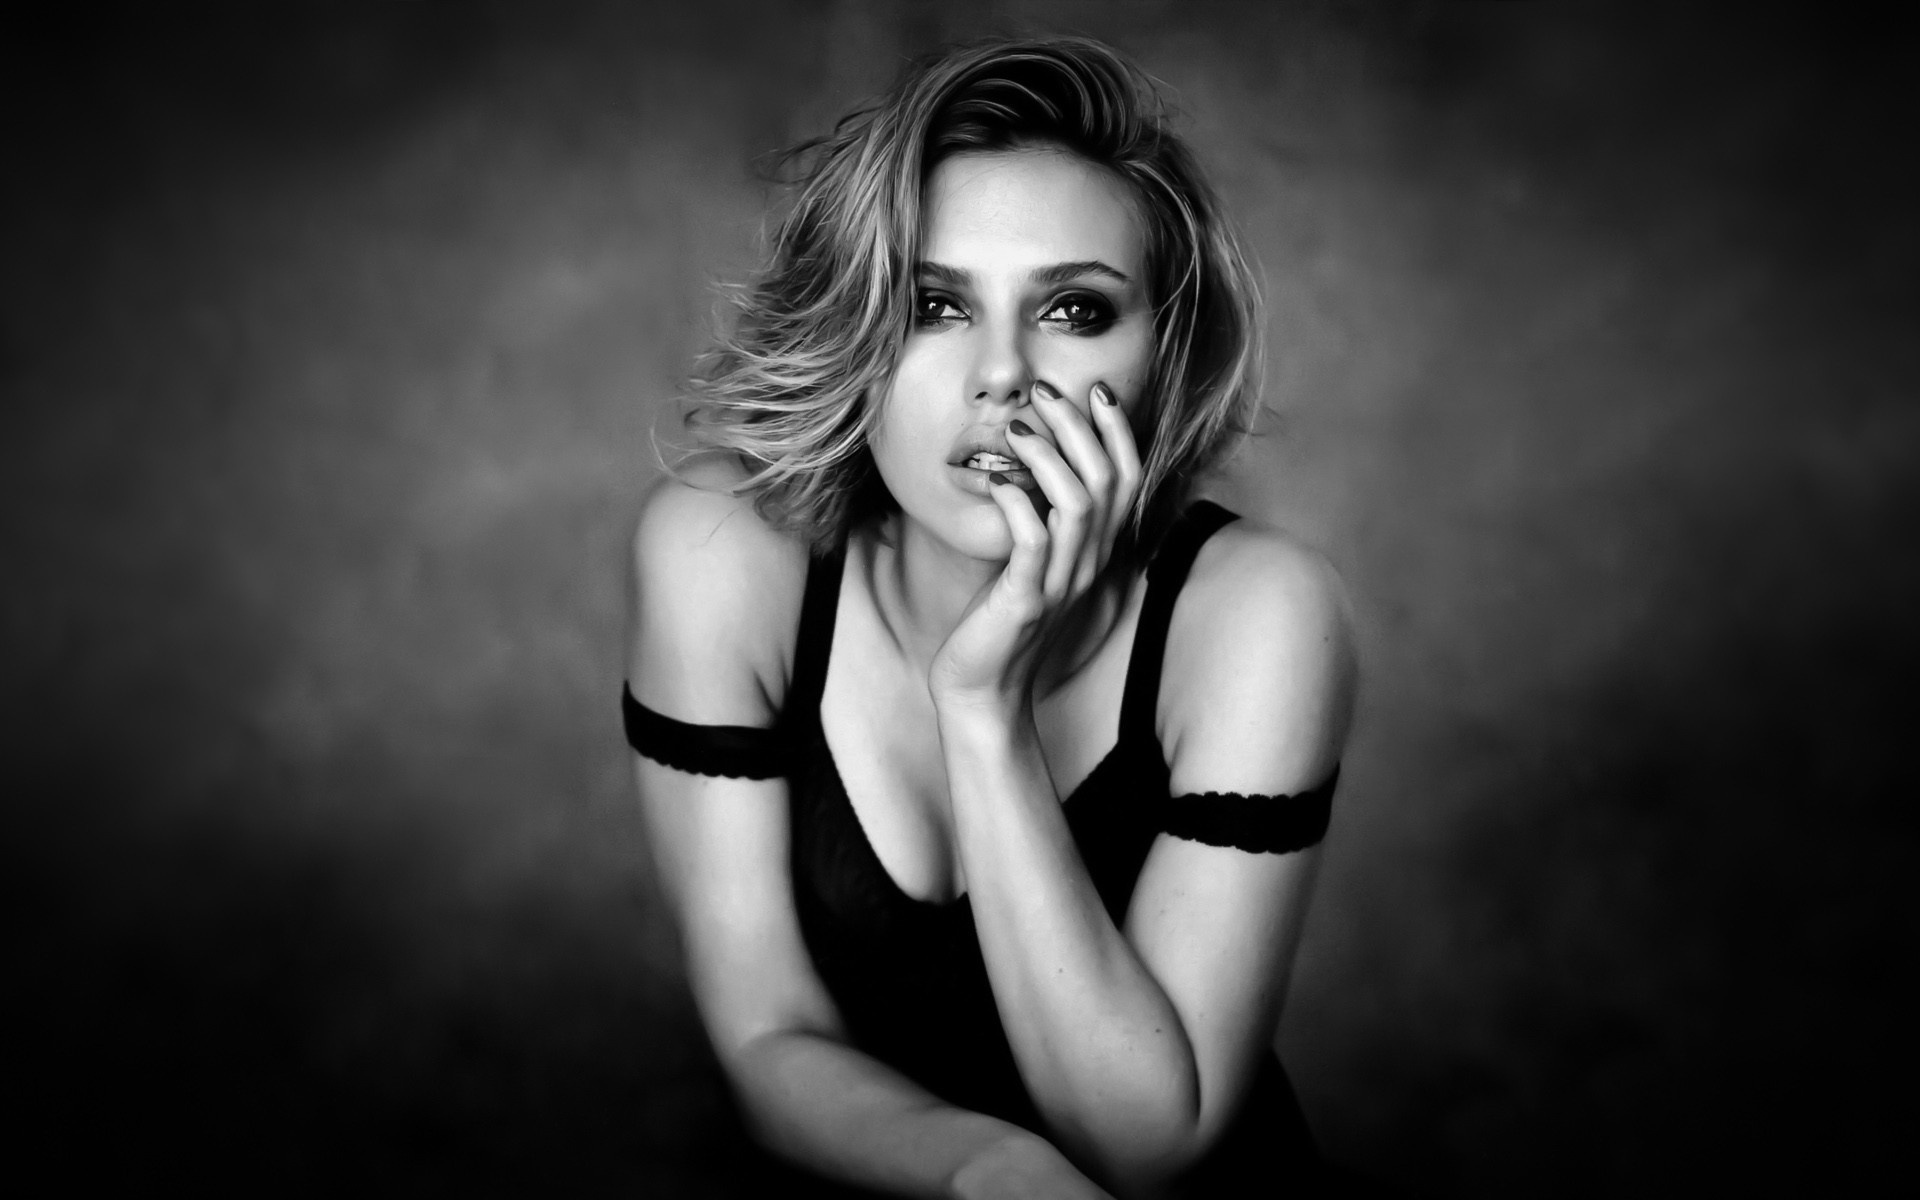 scarlett sexy in black and white